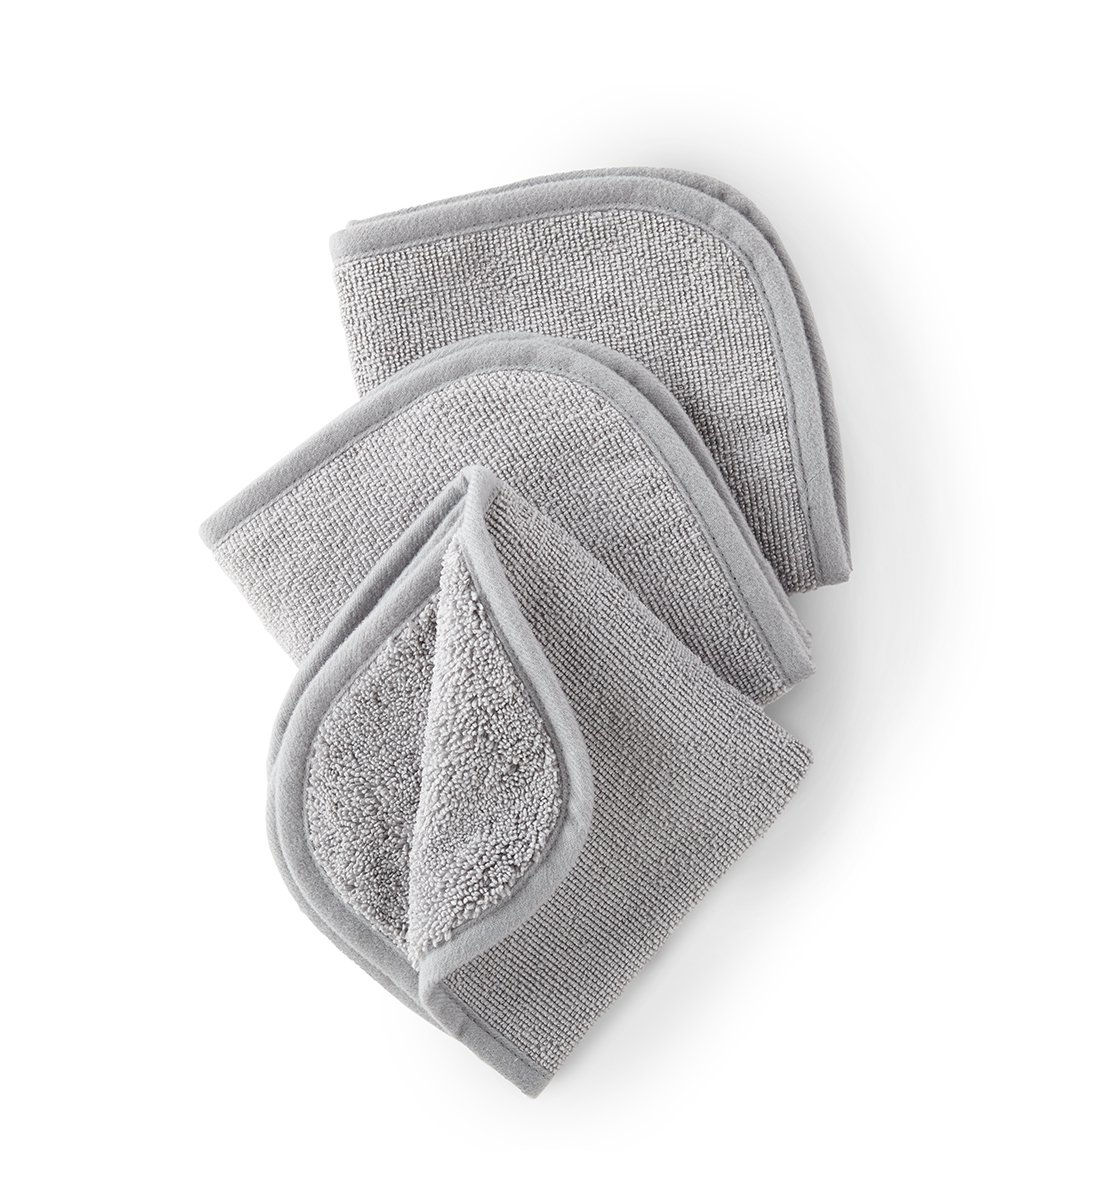 Ultra-Plush Body and Face Pack, graphite